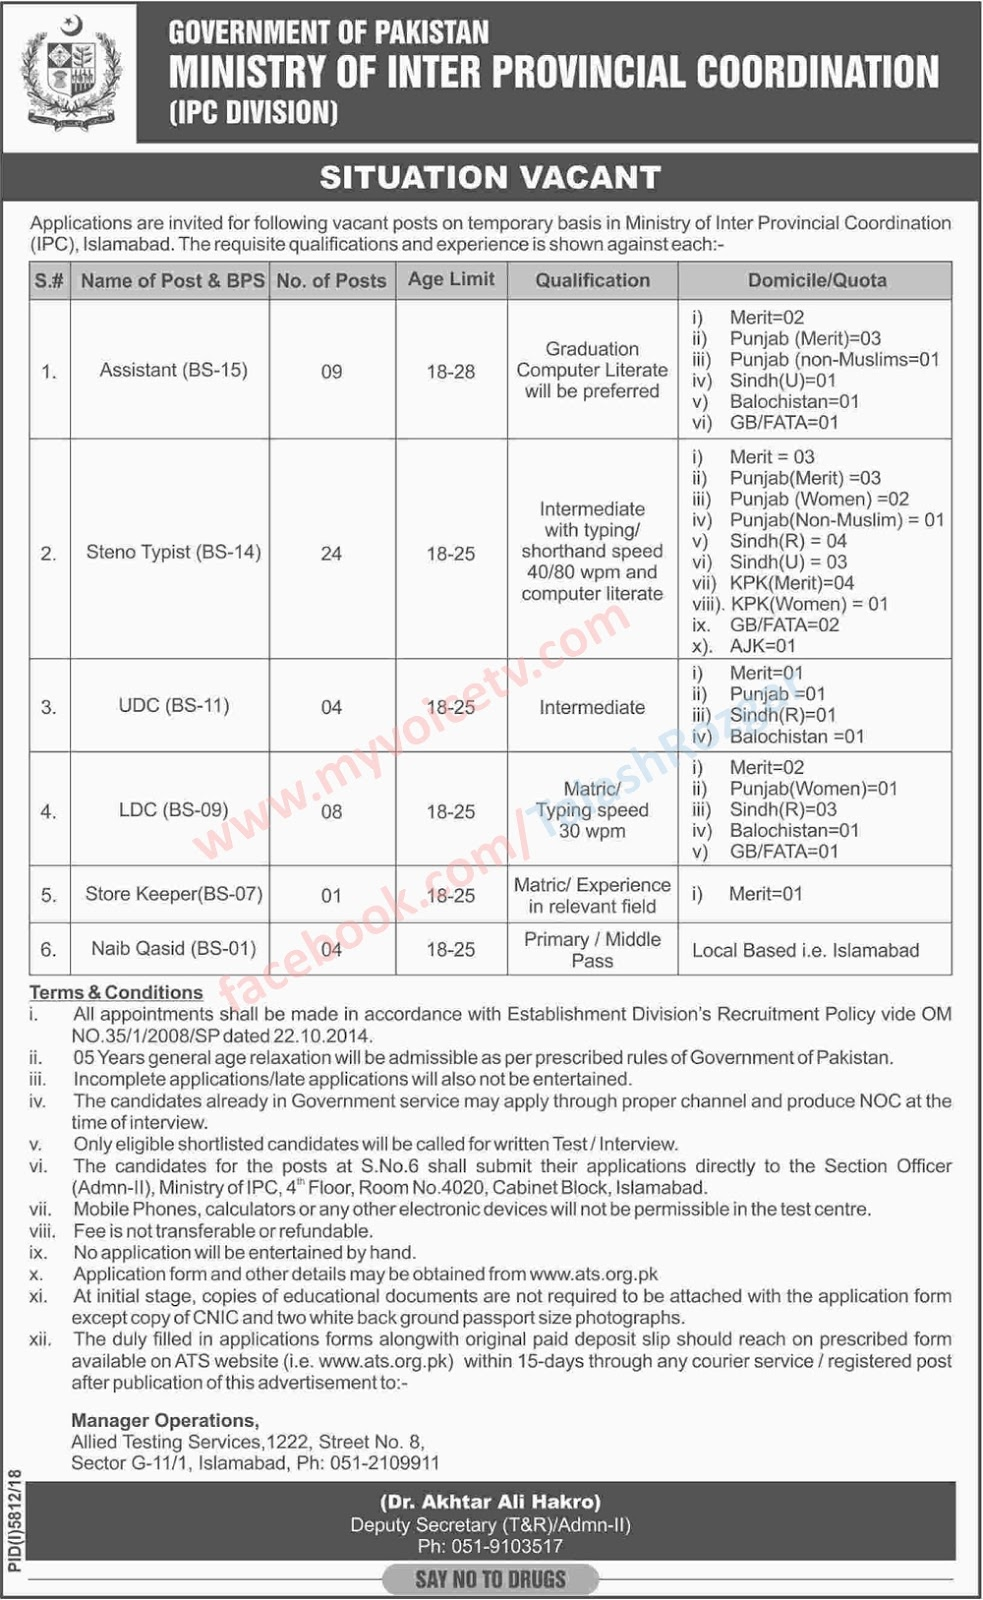 ➨ #Jobs - #Career_Opportunities - #Jobs - in Govt. of Pakistan Ministry of Inter Provincial Coordination - Last date is 20 June 19